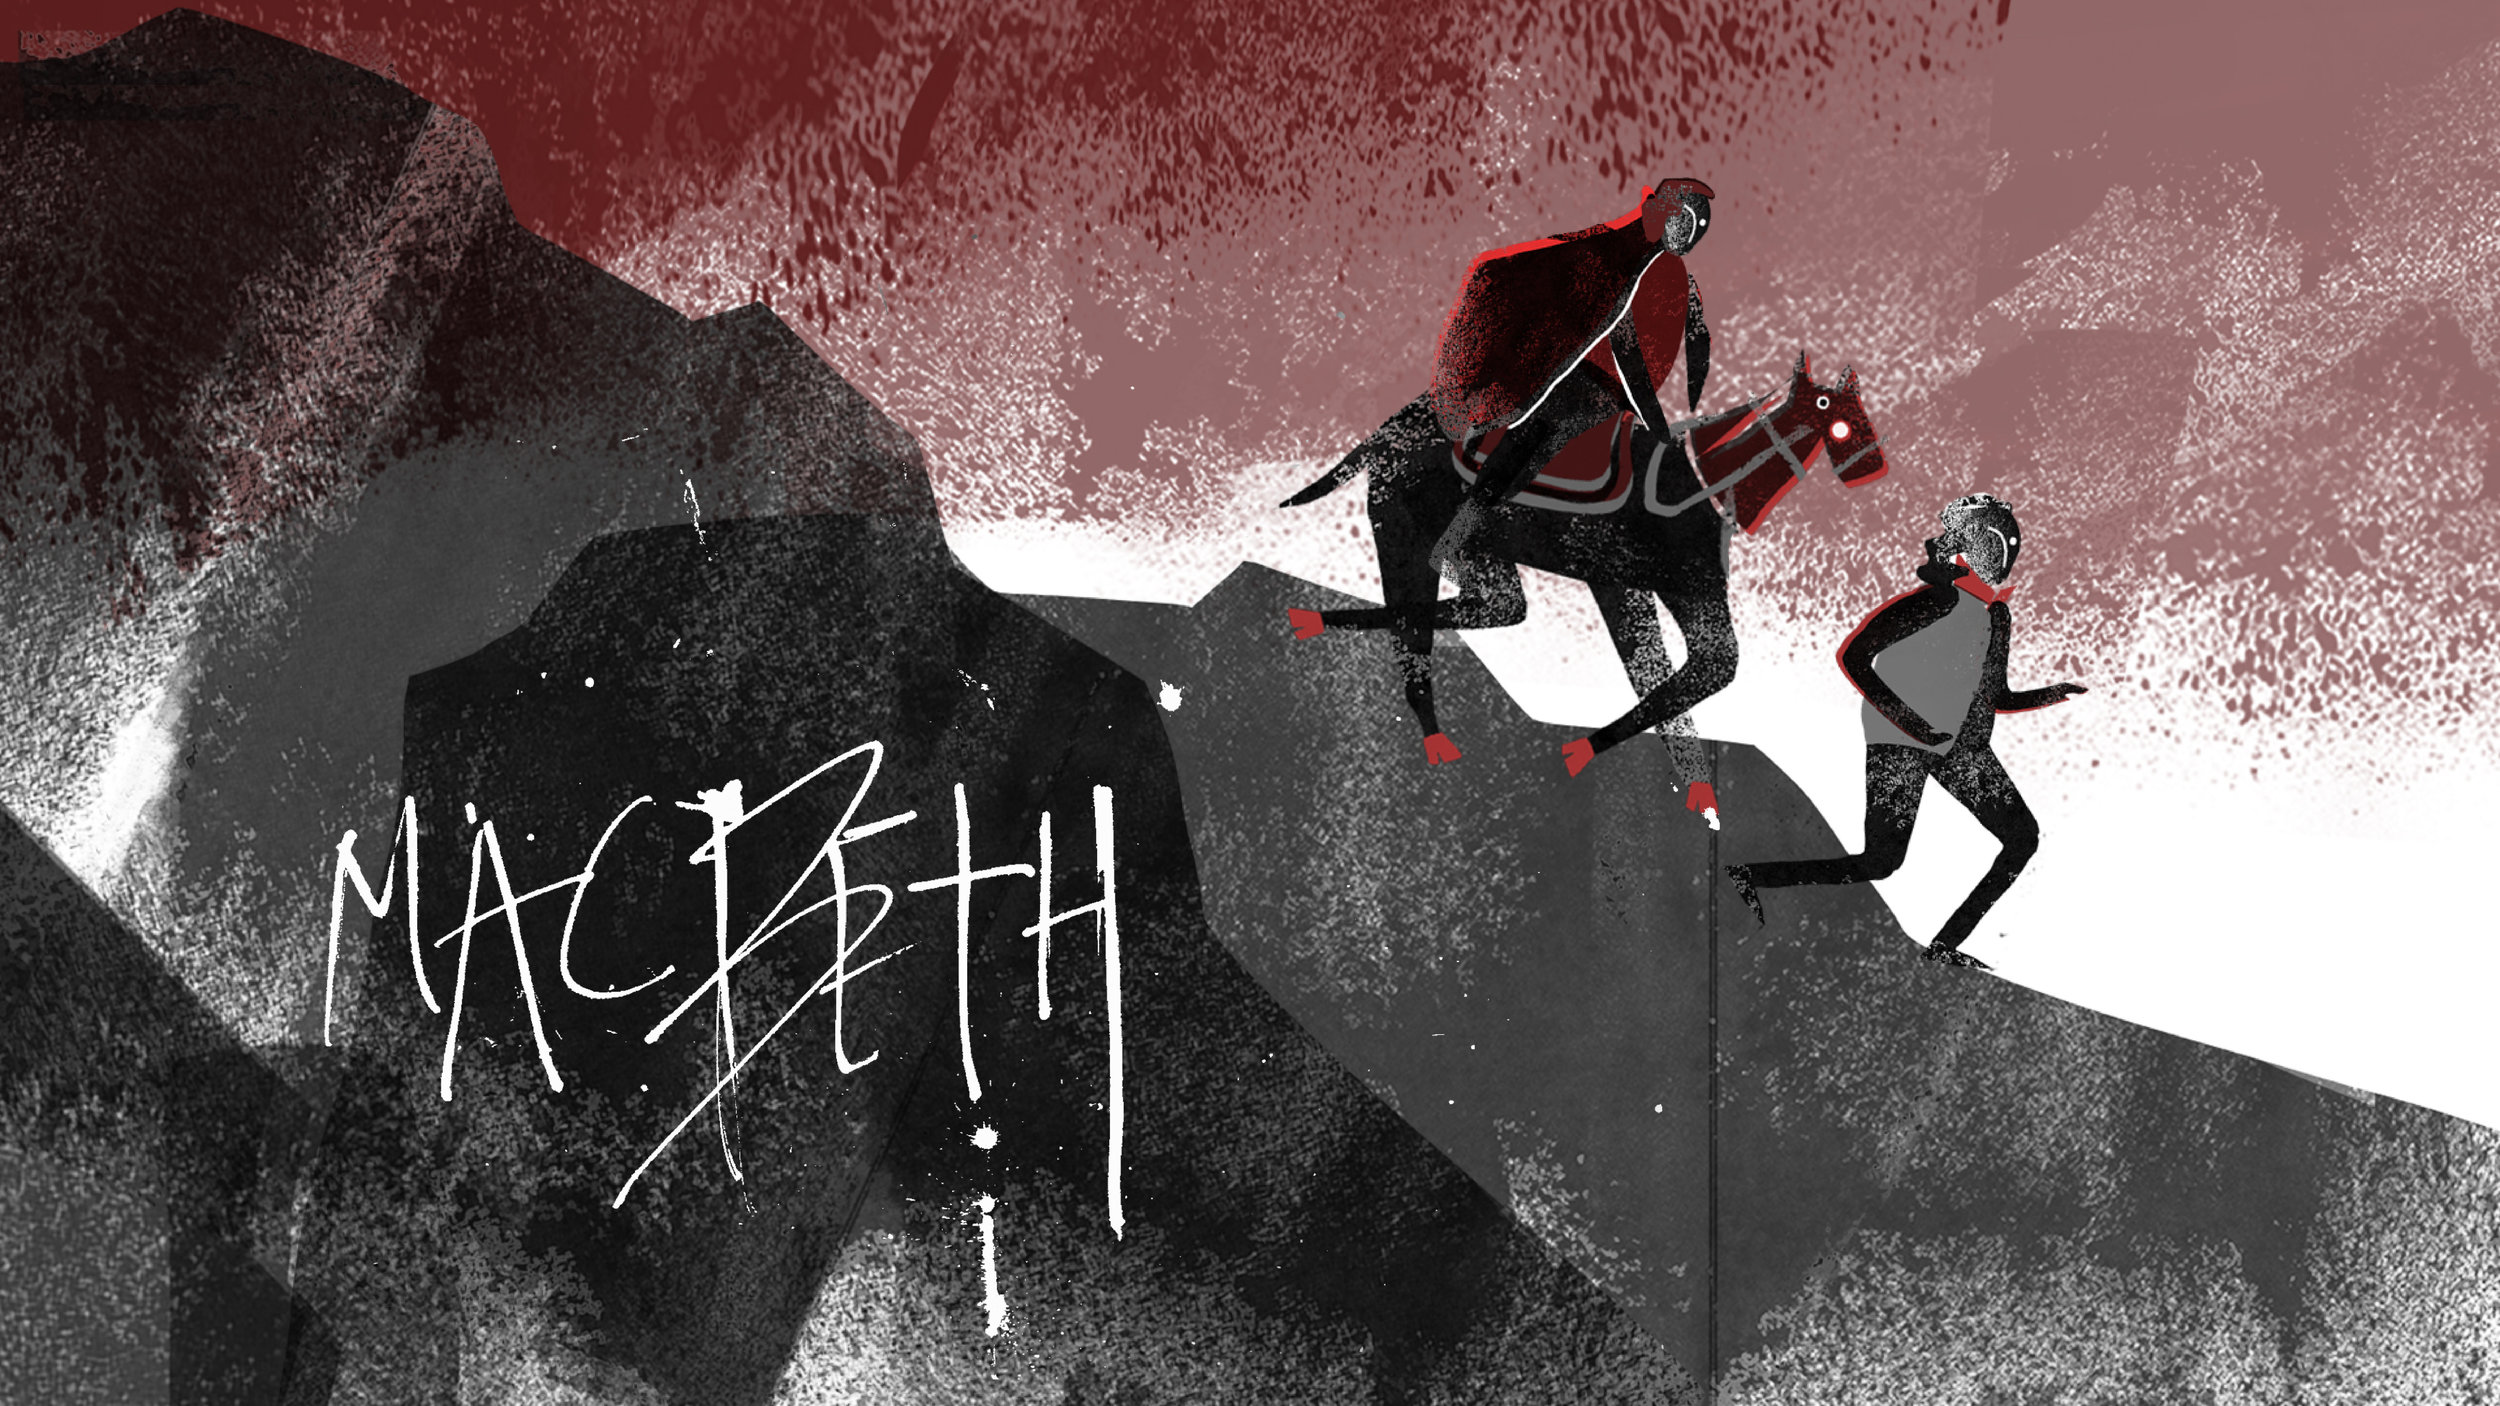 Macbeth Title Sequence Indesign7.jpg